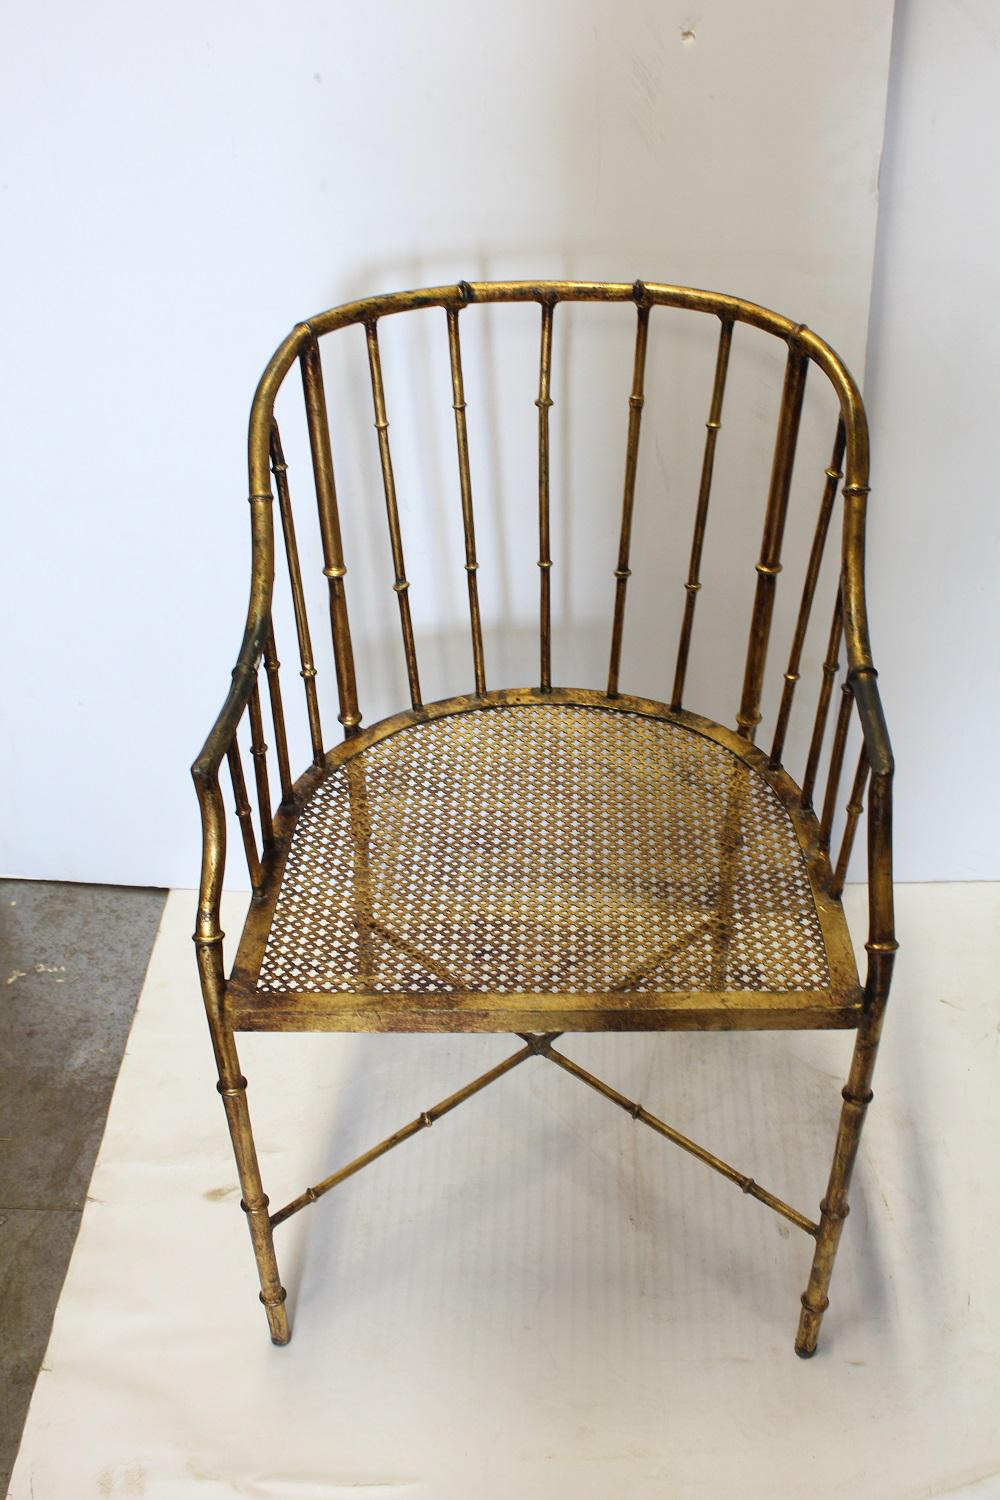 Exceptional 1930s Italian Gold Leaf Accent Chair